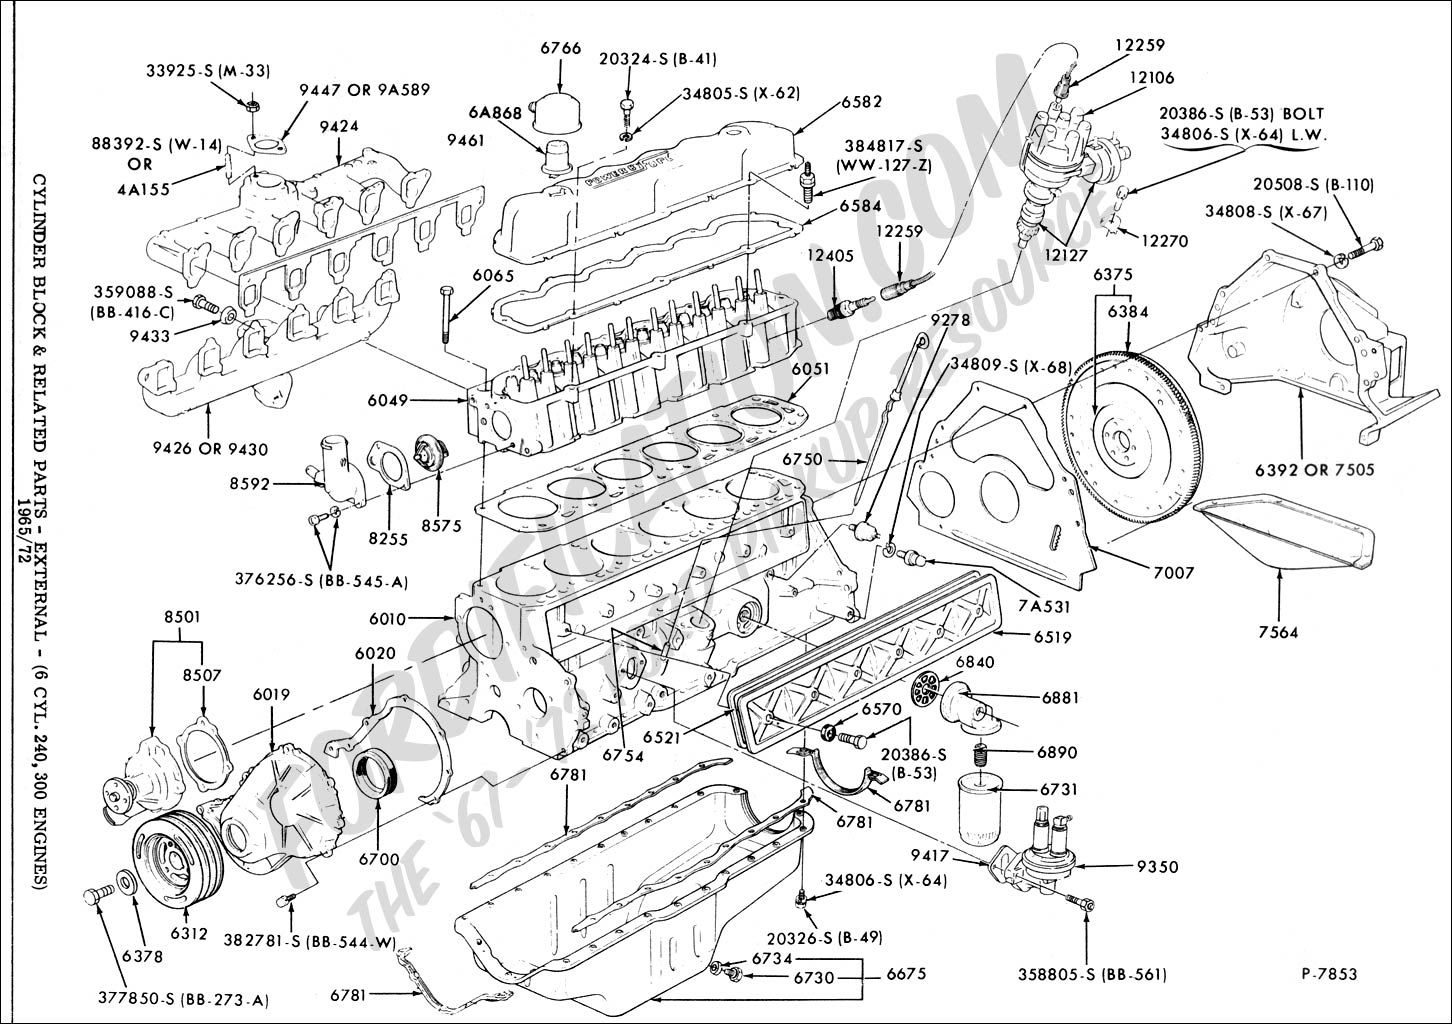 truck motor diagram wire diagram truck engine diagrams [ 1452 x 1024 Pixel ]